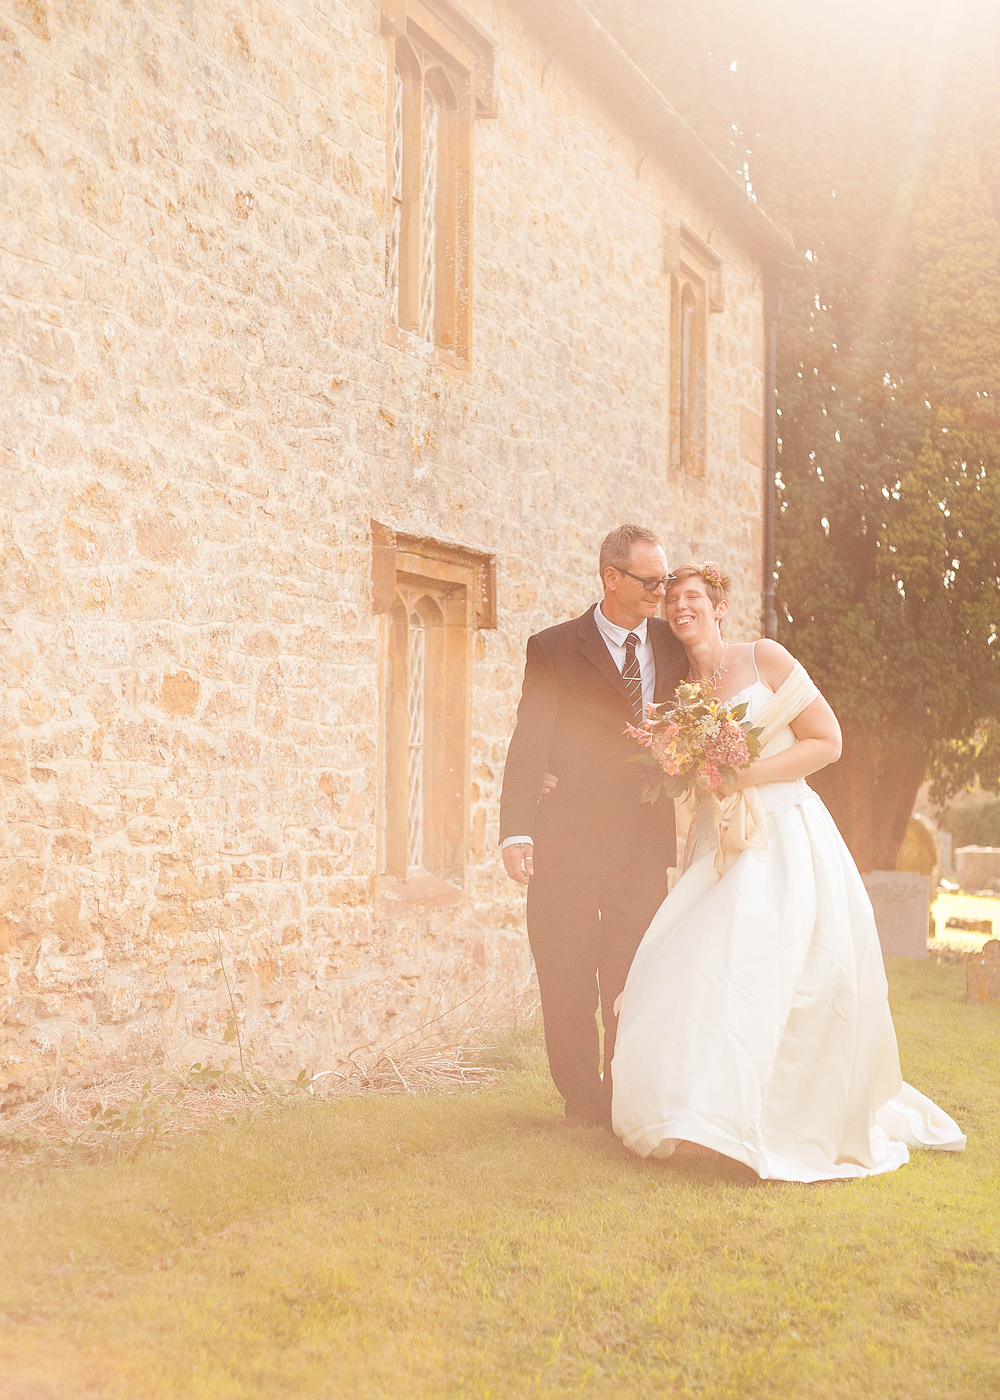 somerset england anniversary session, liz baker photography, fine art marriage